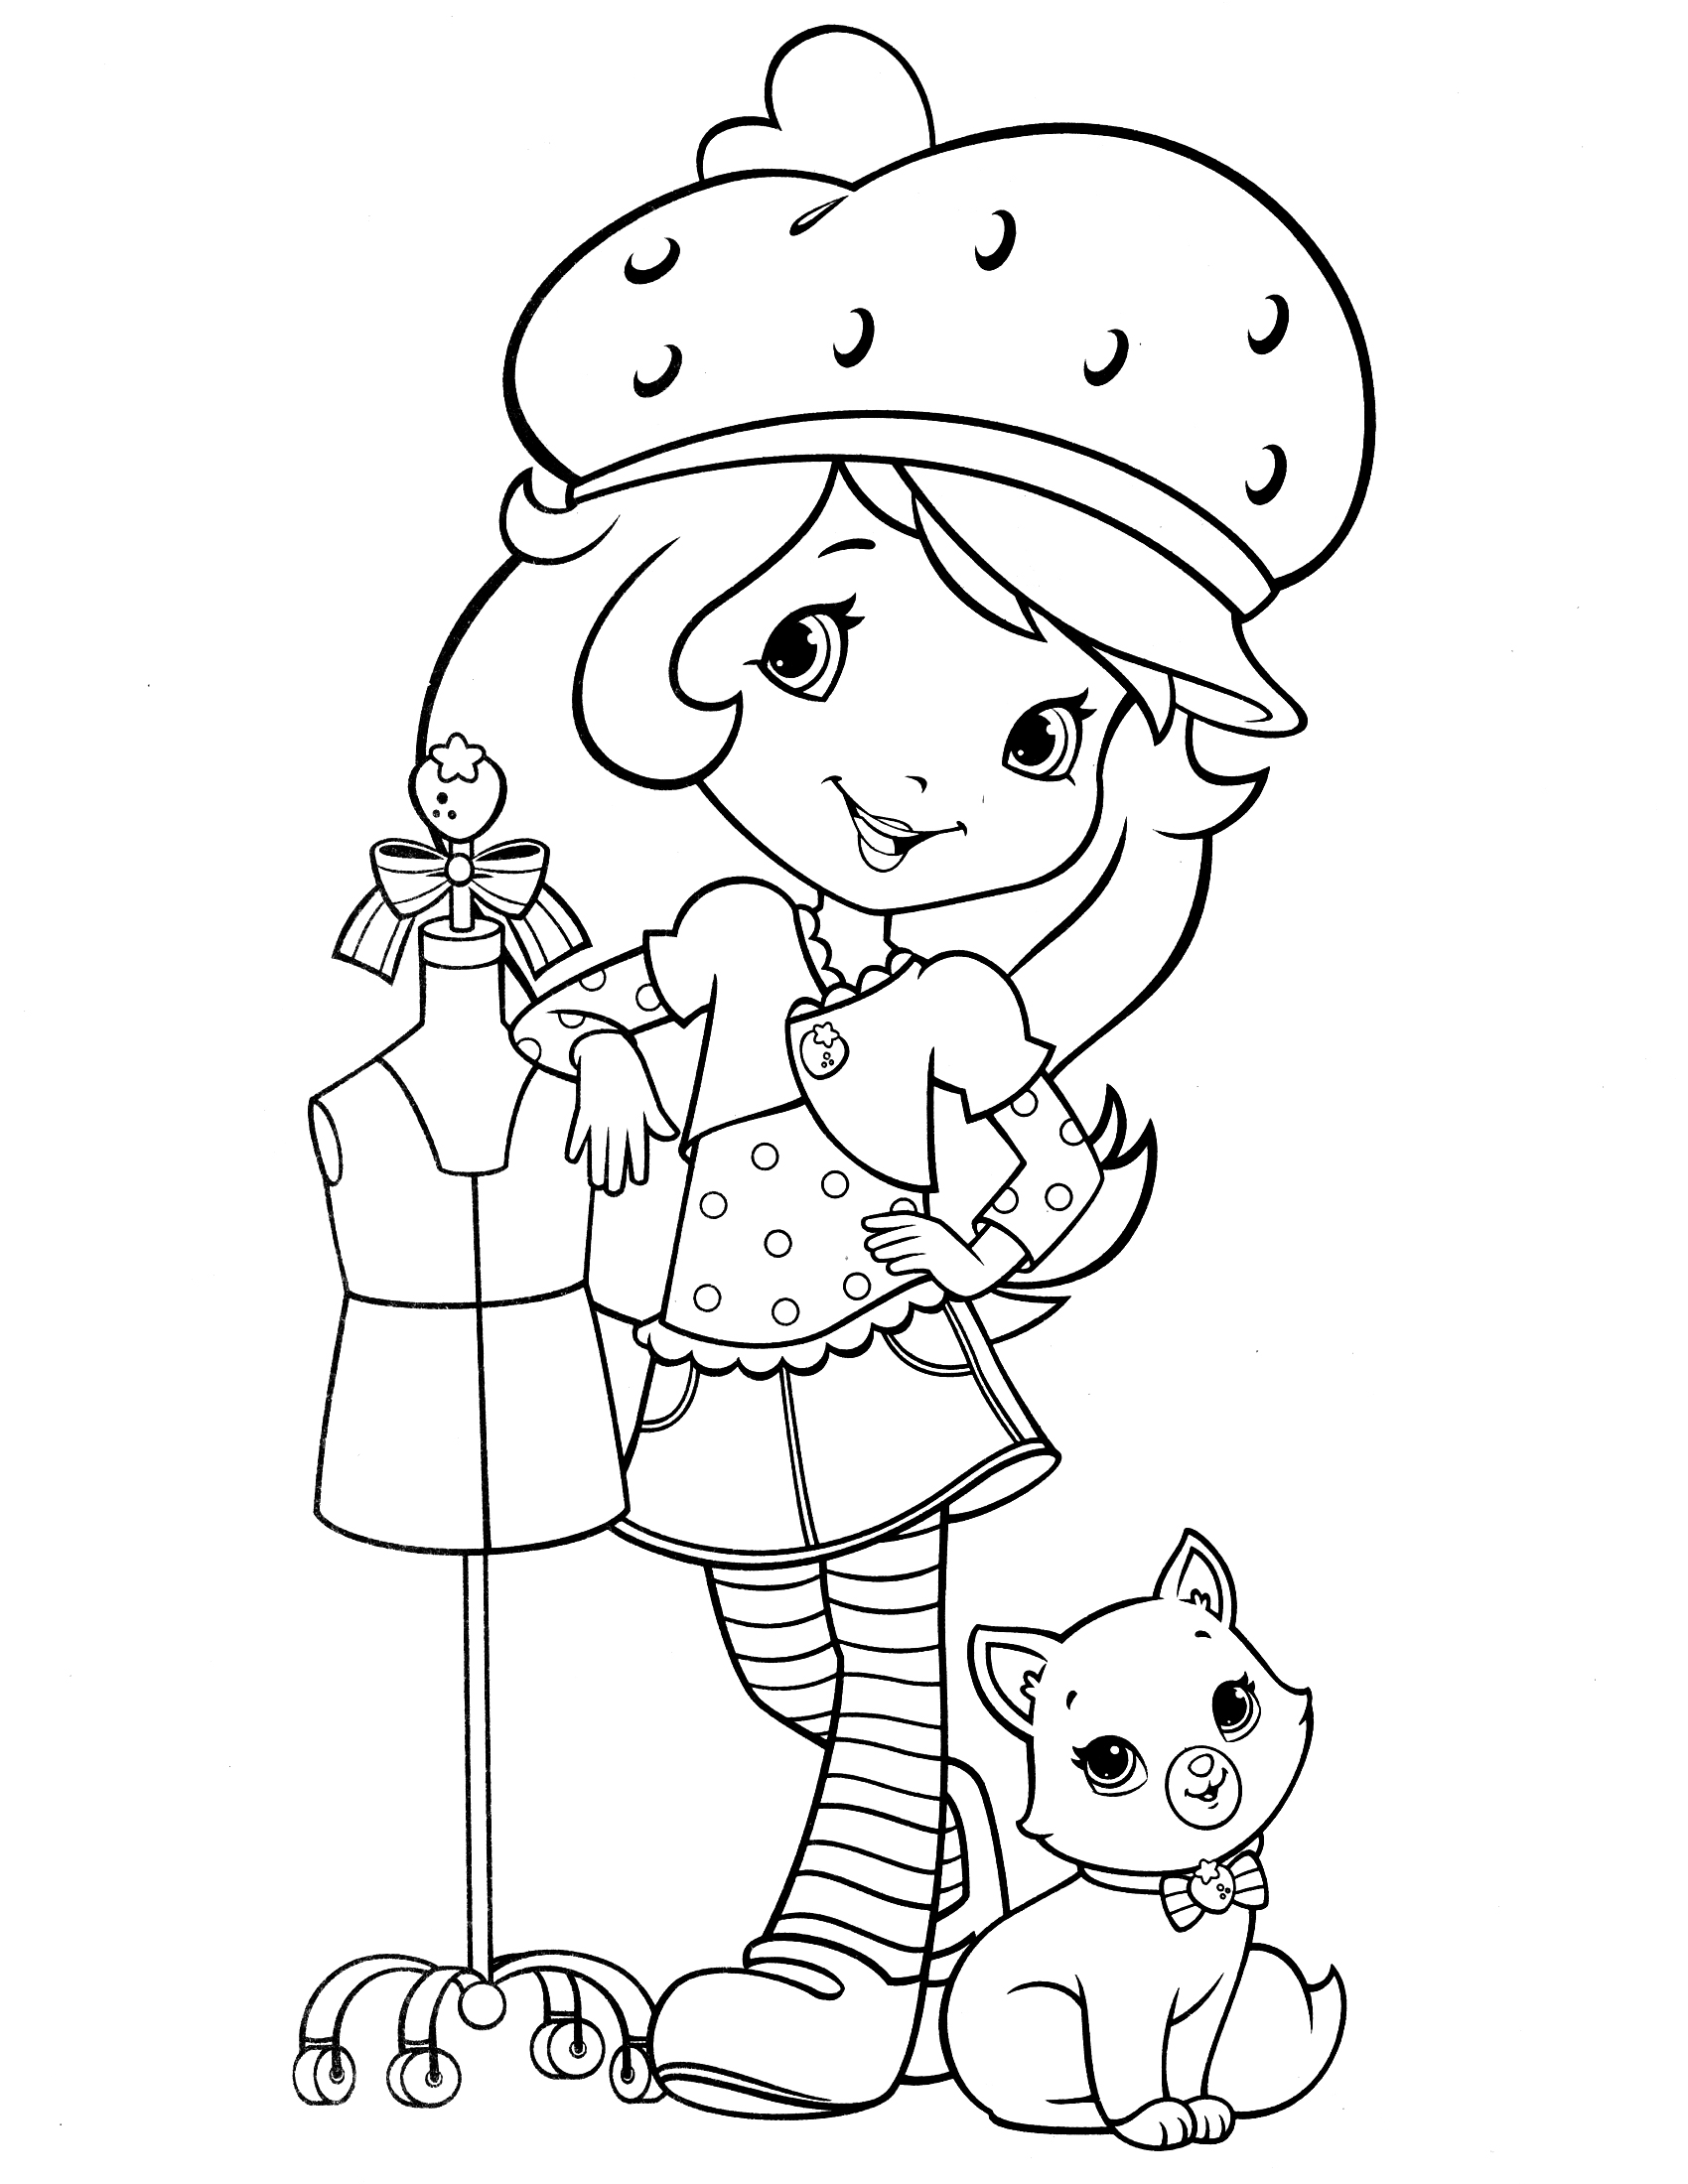 Strawberry Shortcake Dog Coloring Pages